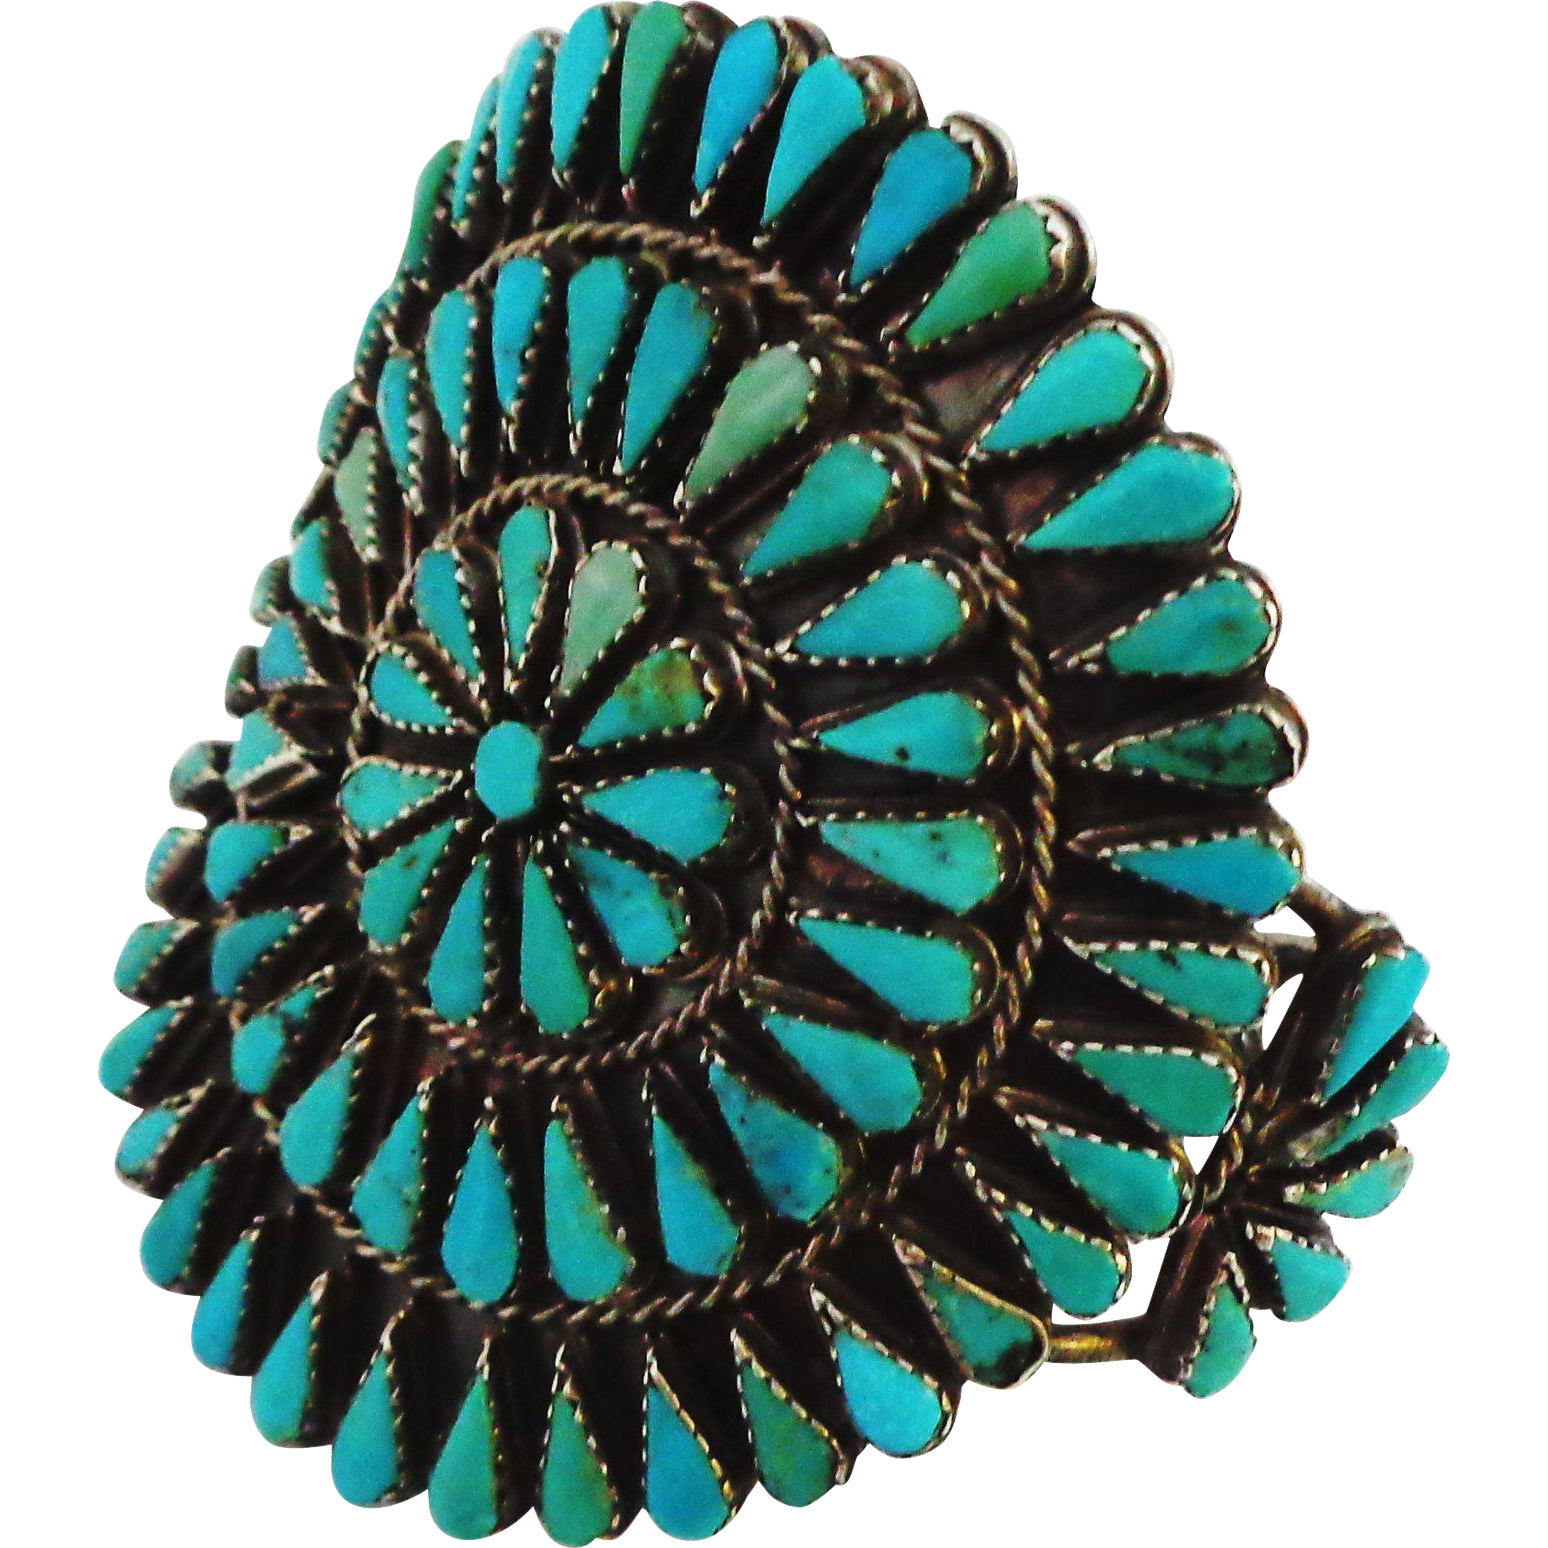 Native American Large Turquoise Zuni Sterling Silver Cuff Bracelet - 55gm